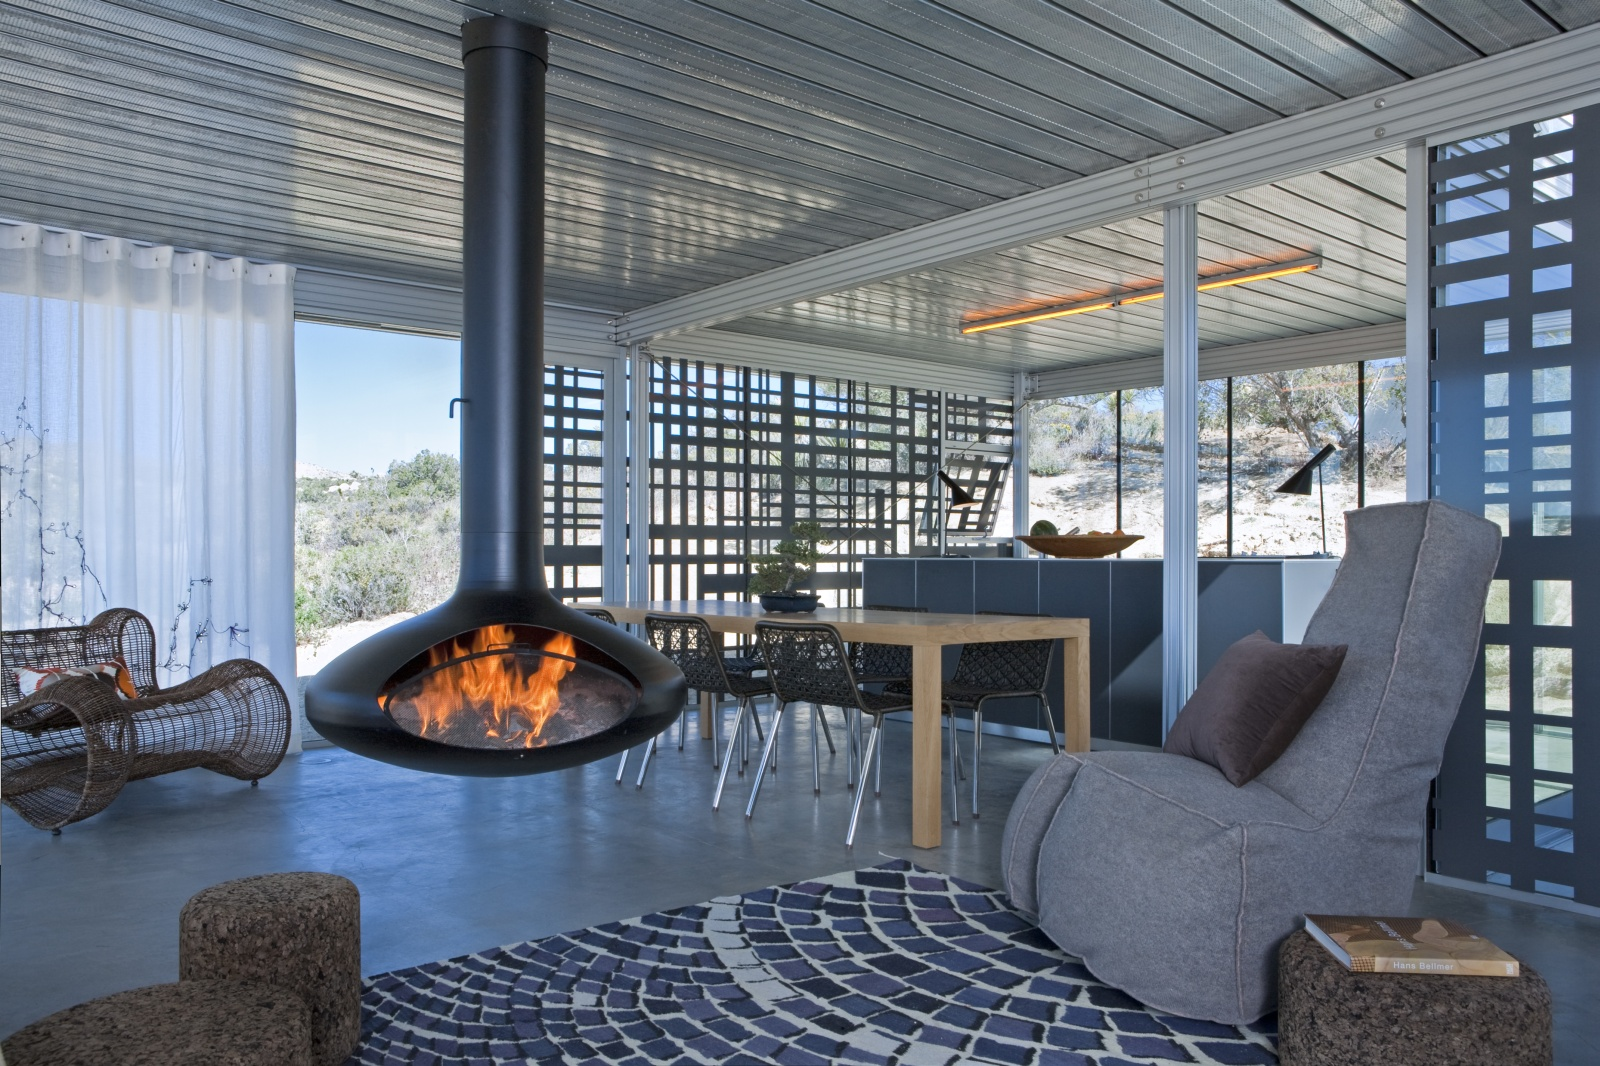 Living room of the Off-Grid itHouse